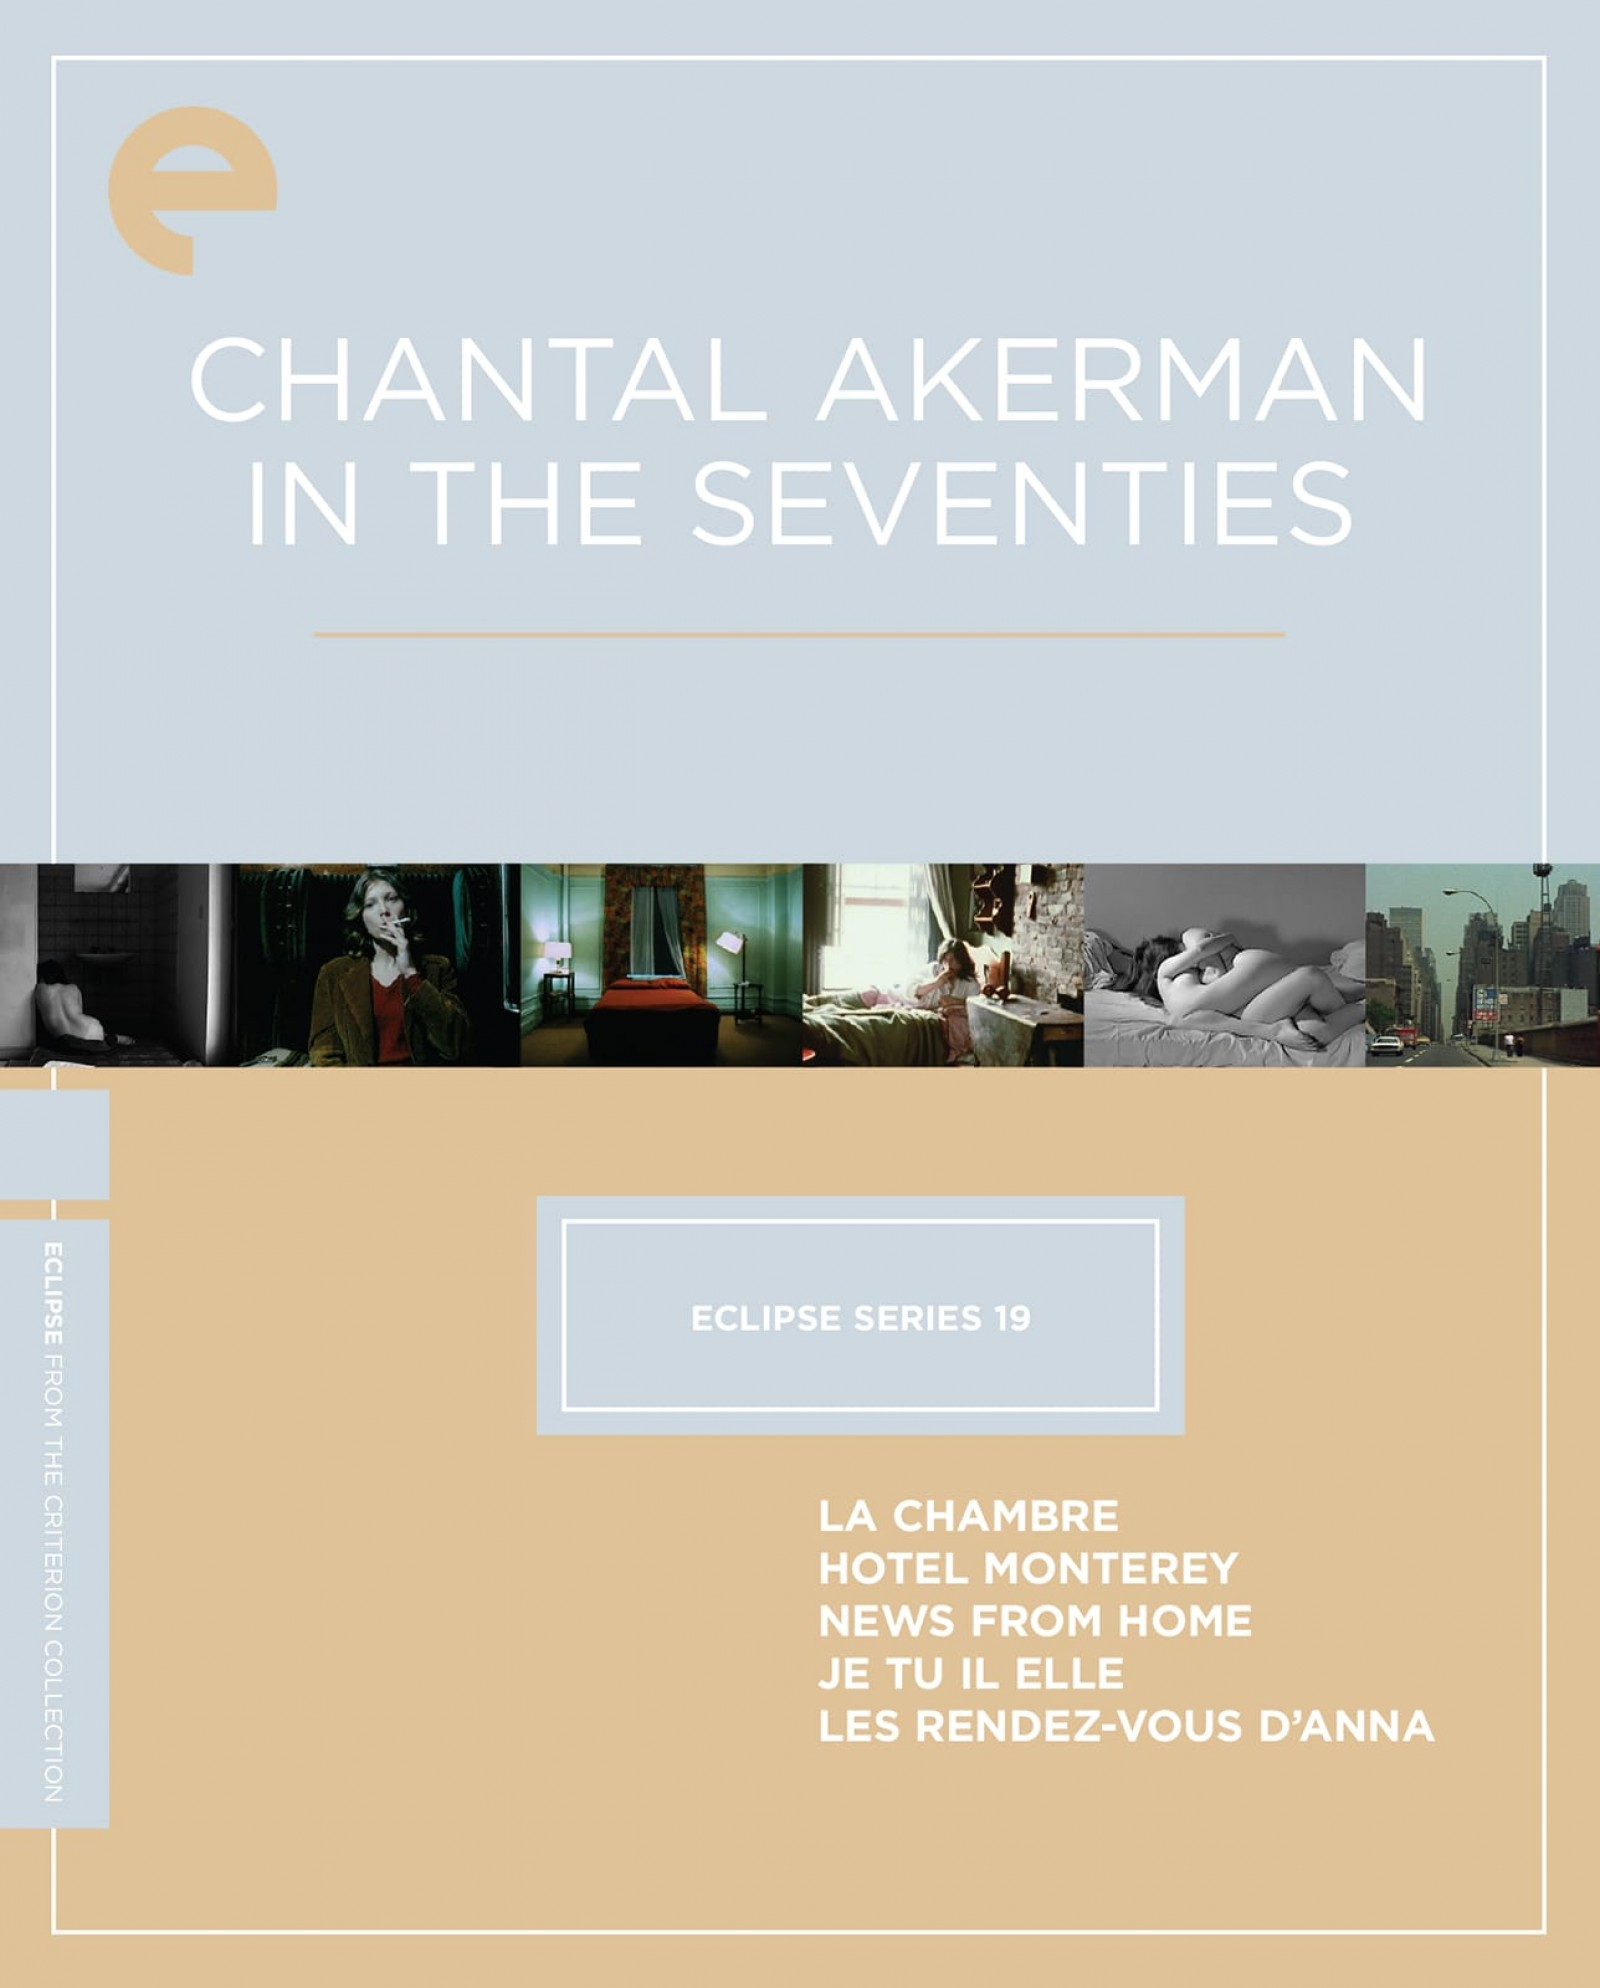 Eclipse Series 19: Chantal Akerman in the Seventies